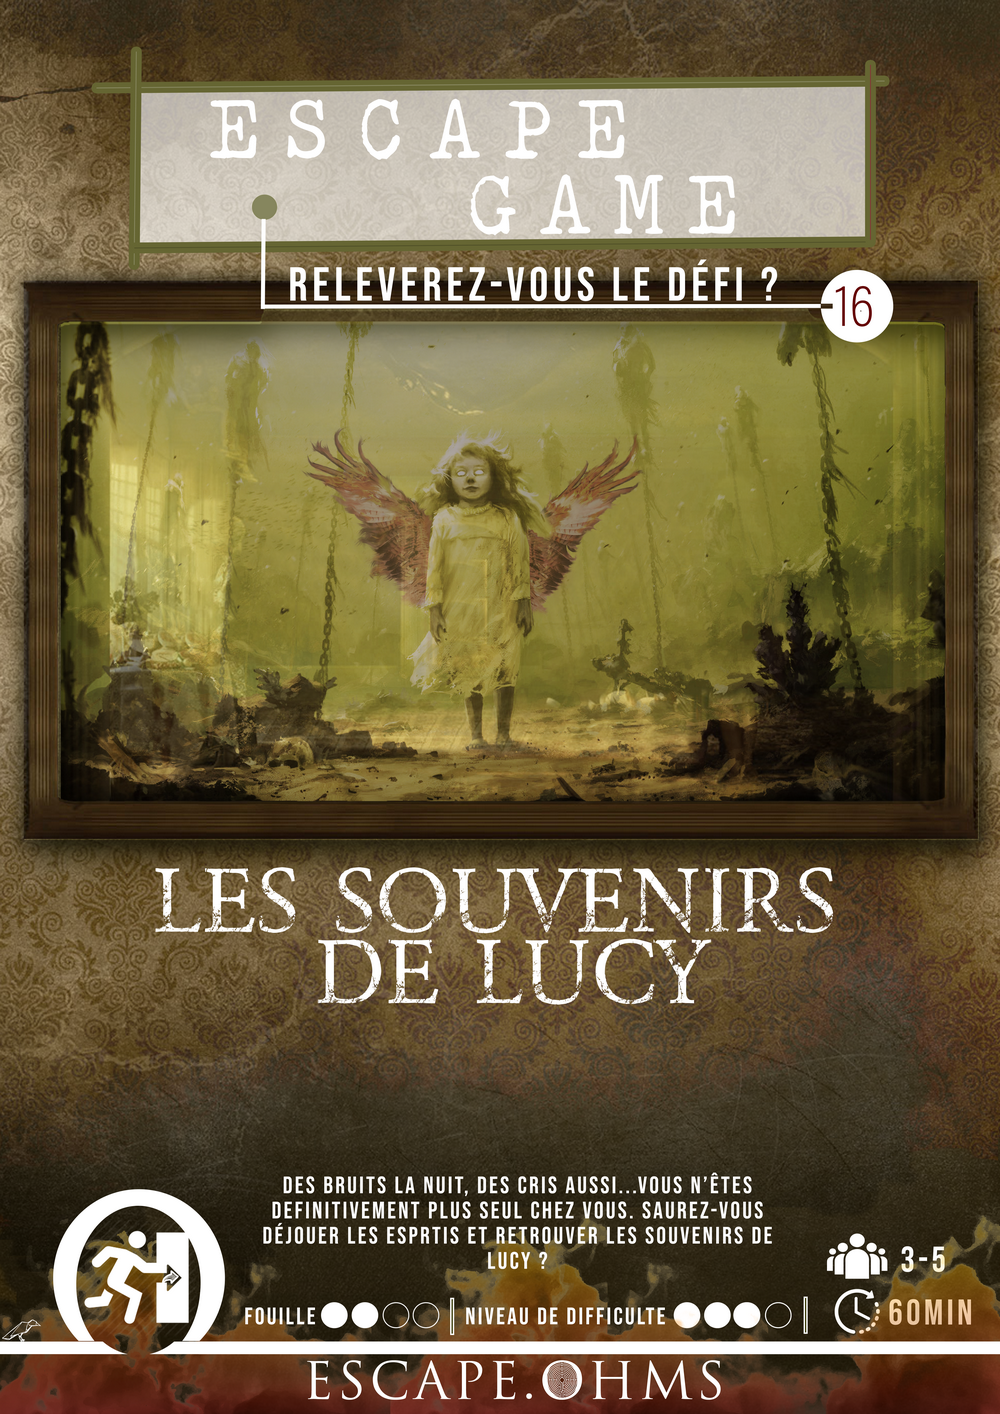 Escape Game Nantes Les souvenirs de Lucy